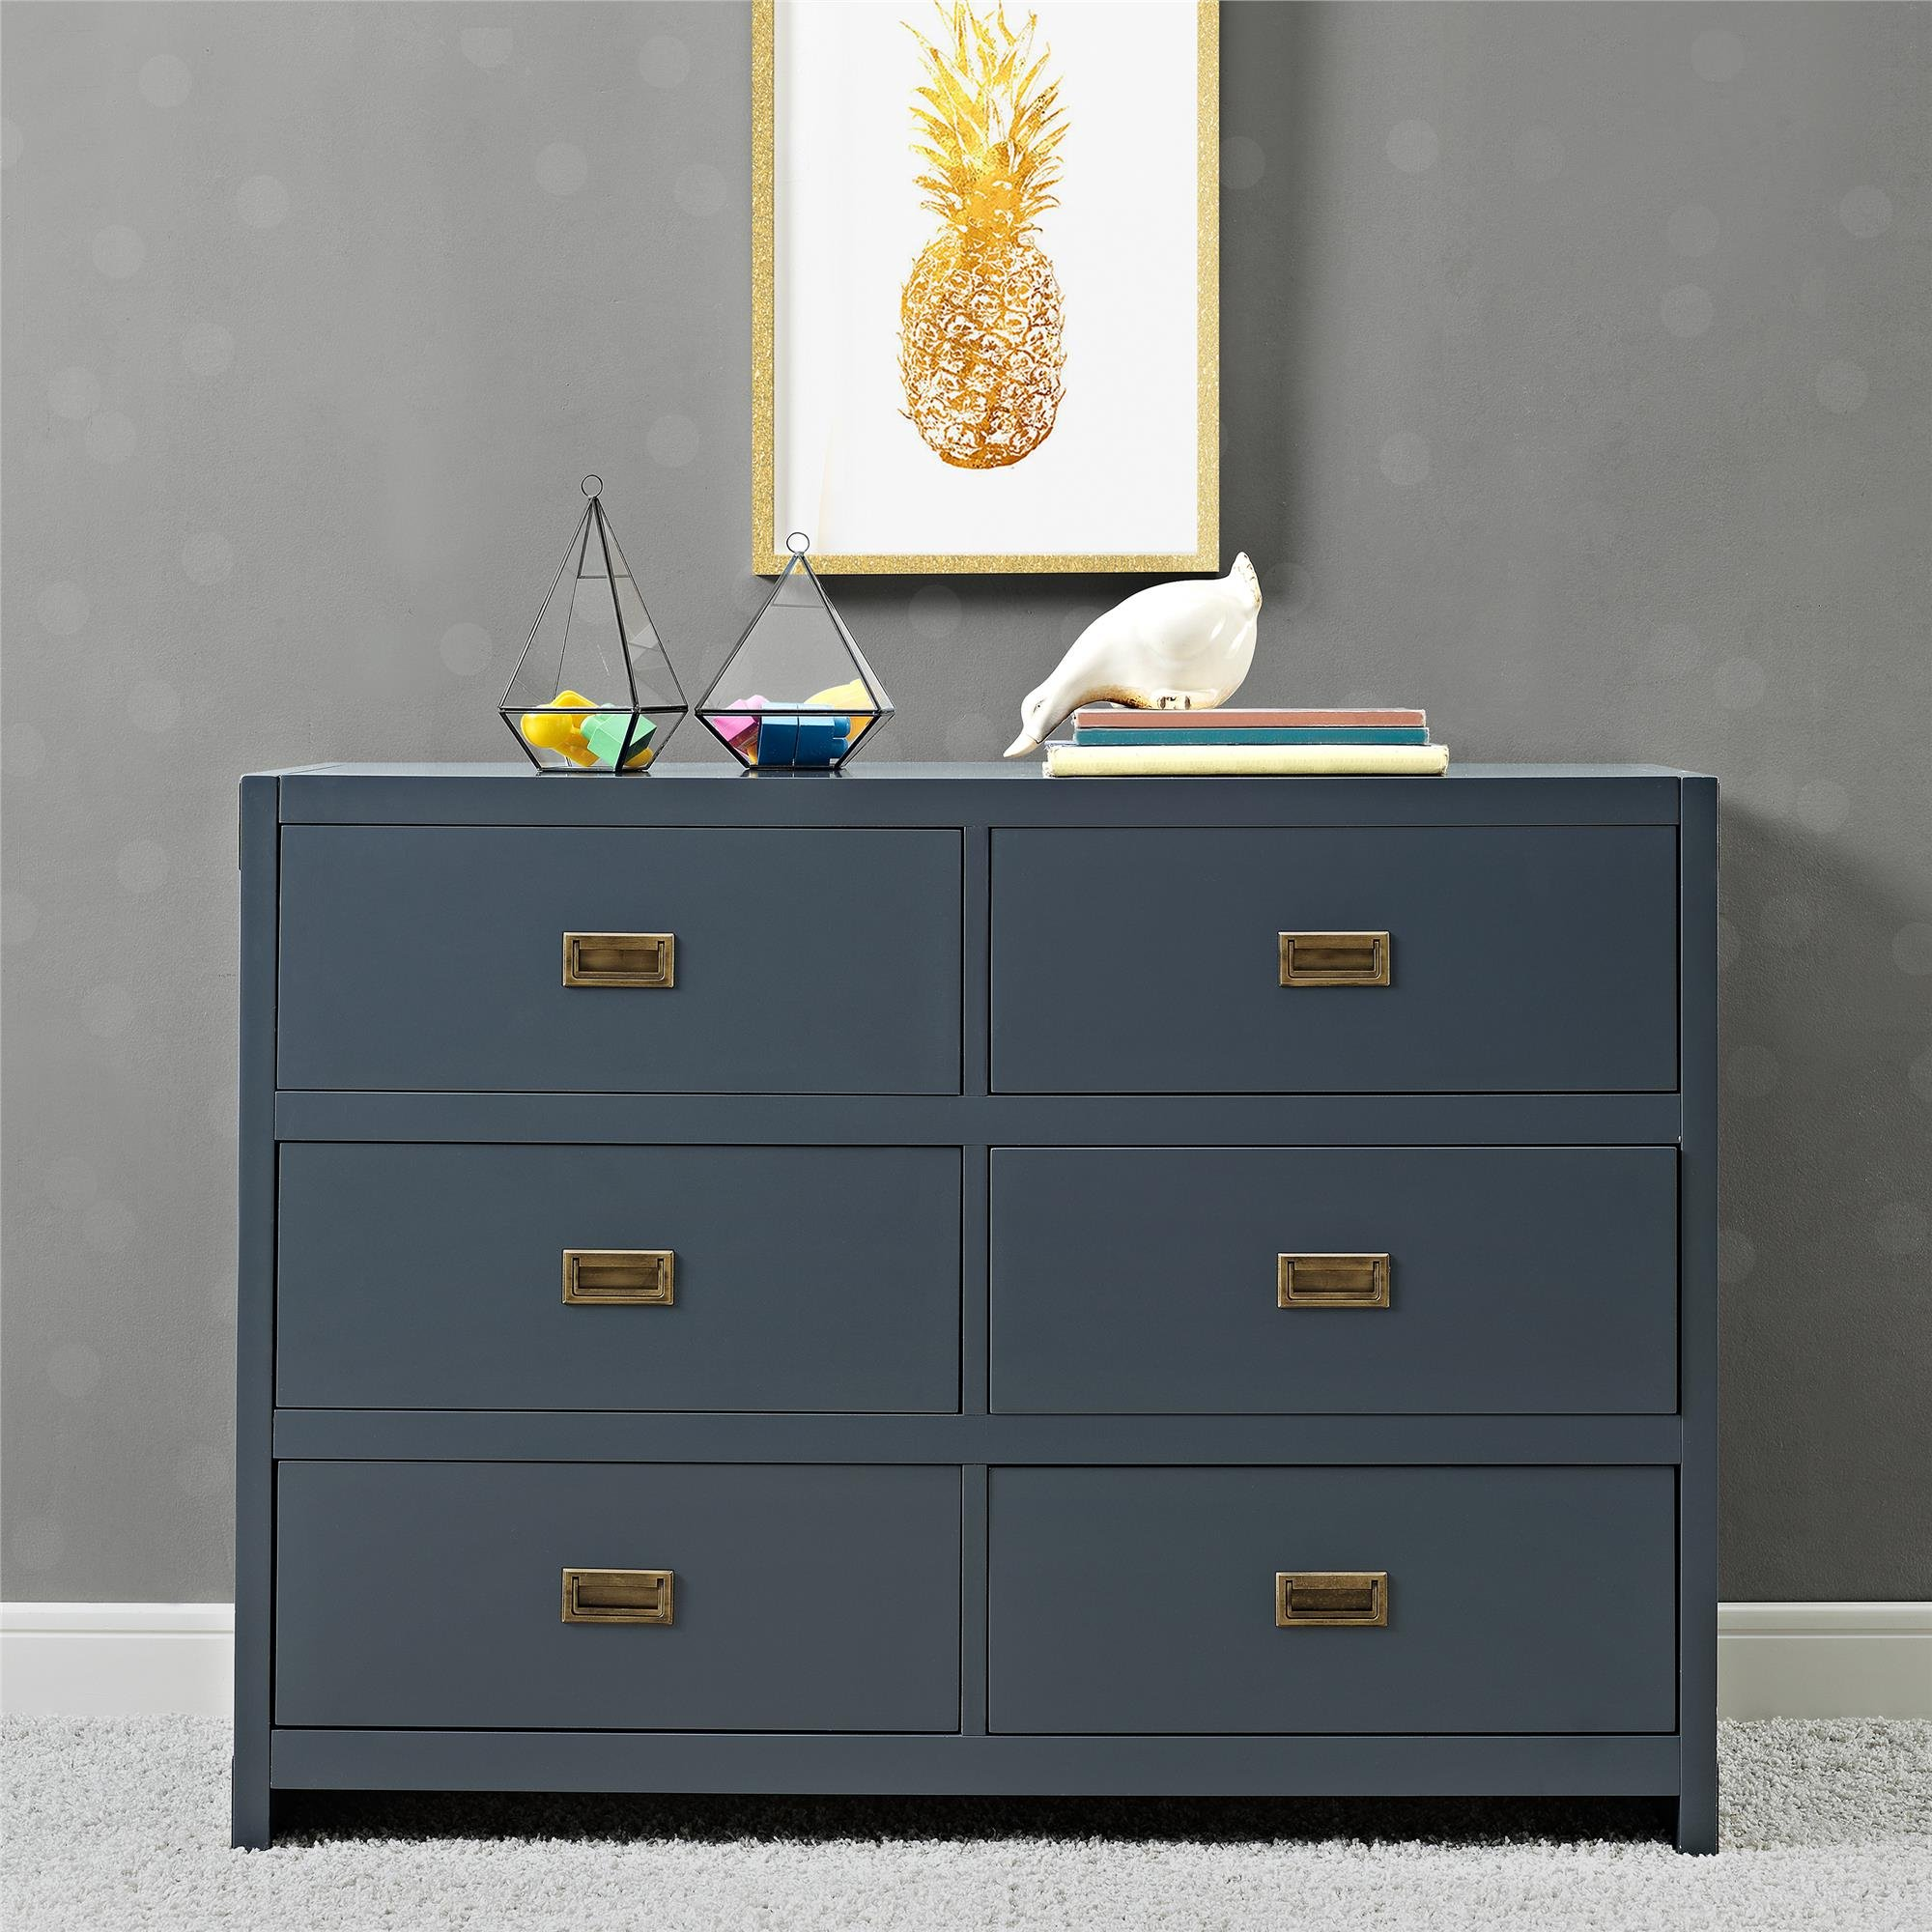 Baby Relax Miles, 6 Drawer Dresser, Graphite Blue by Baby Relax